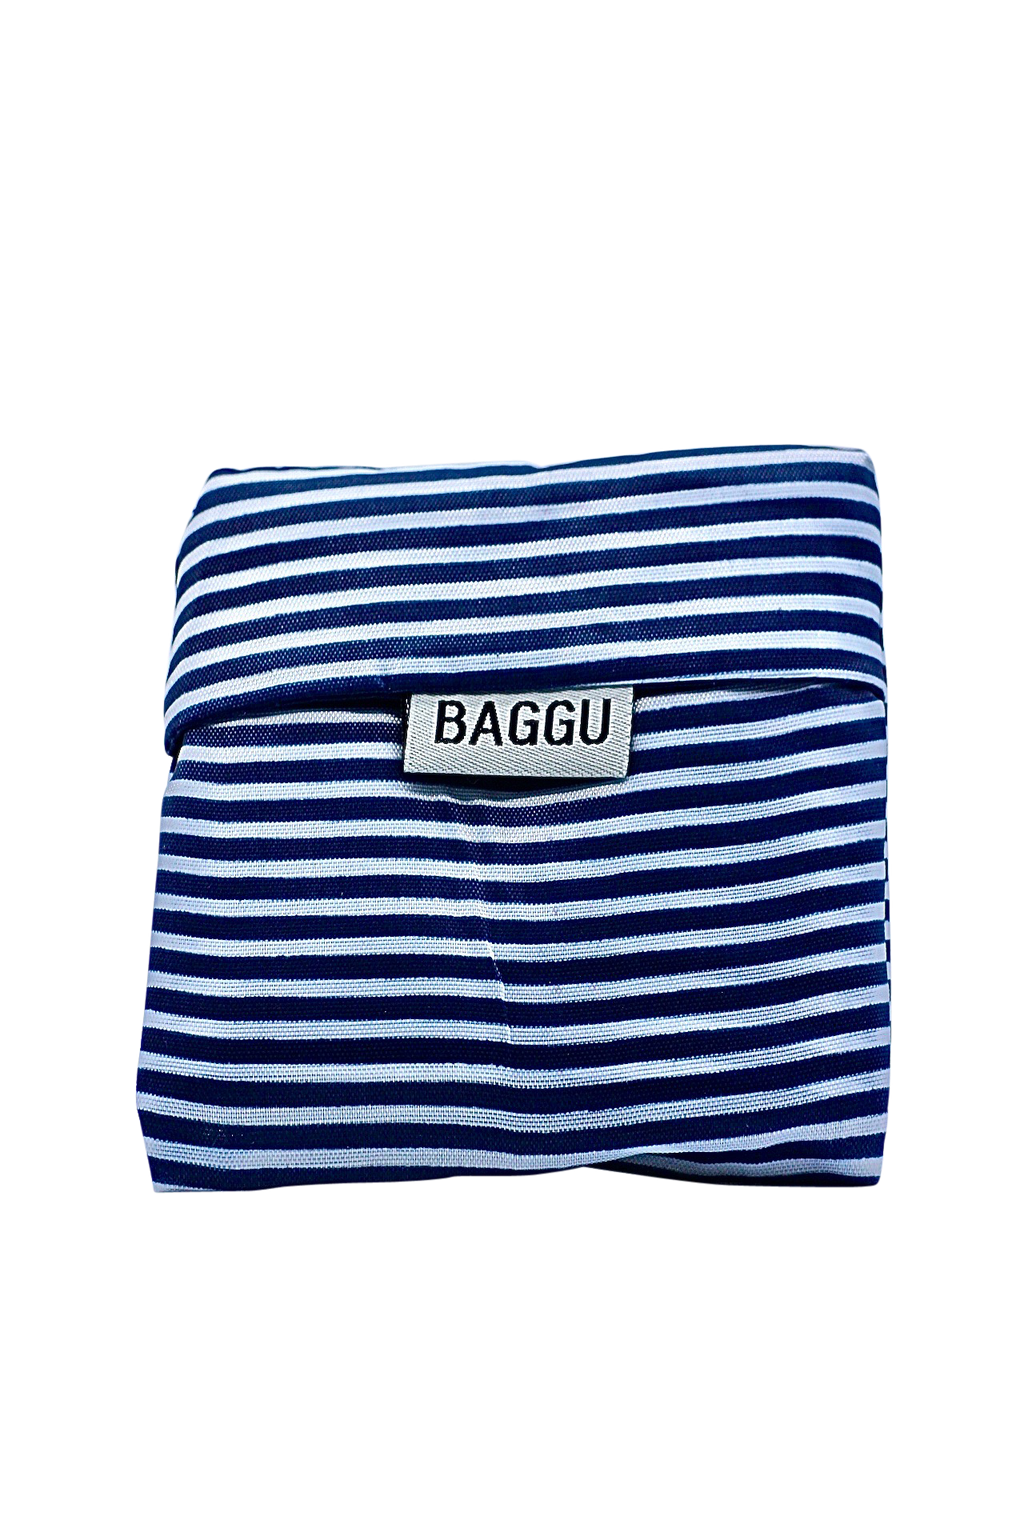 Reusable, foldable shopping bag from BAGGU